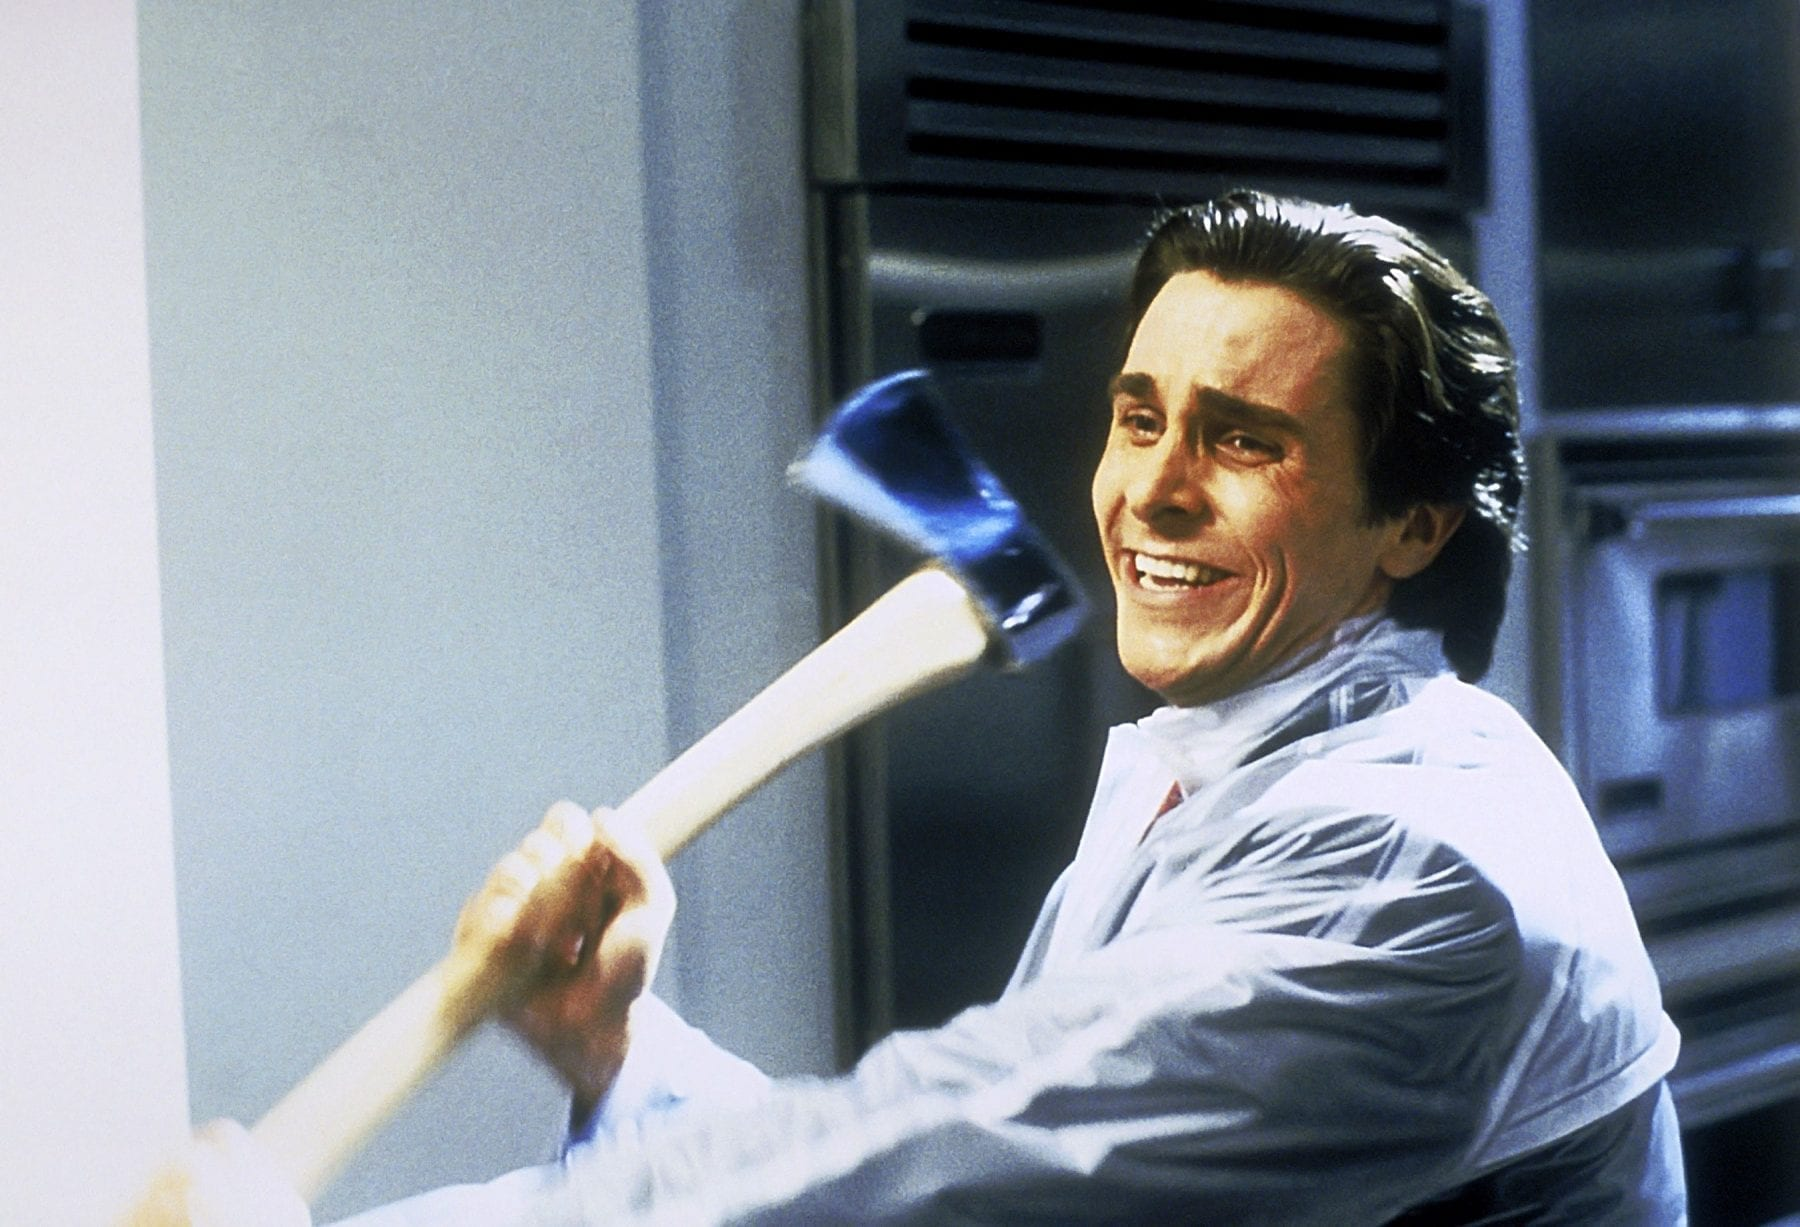 Patrick Bateman (Christian Bale) just wants to know why you don't like Huey Lewis and the New in American Psycho (2000).